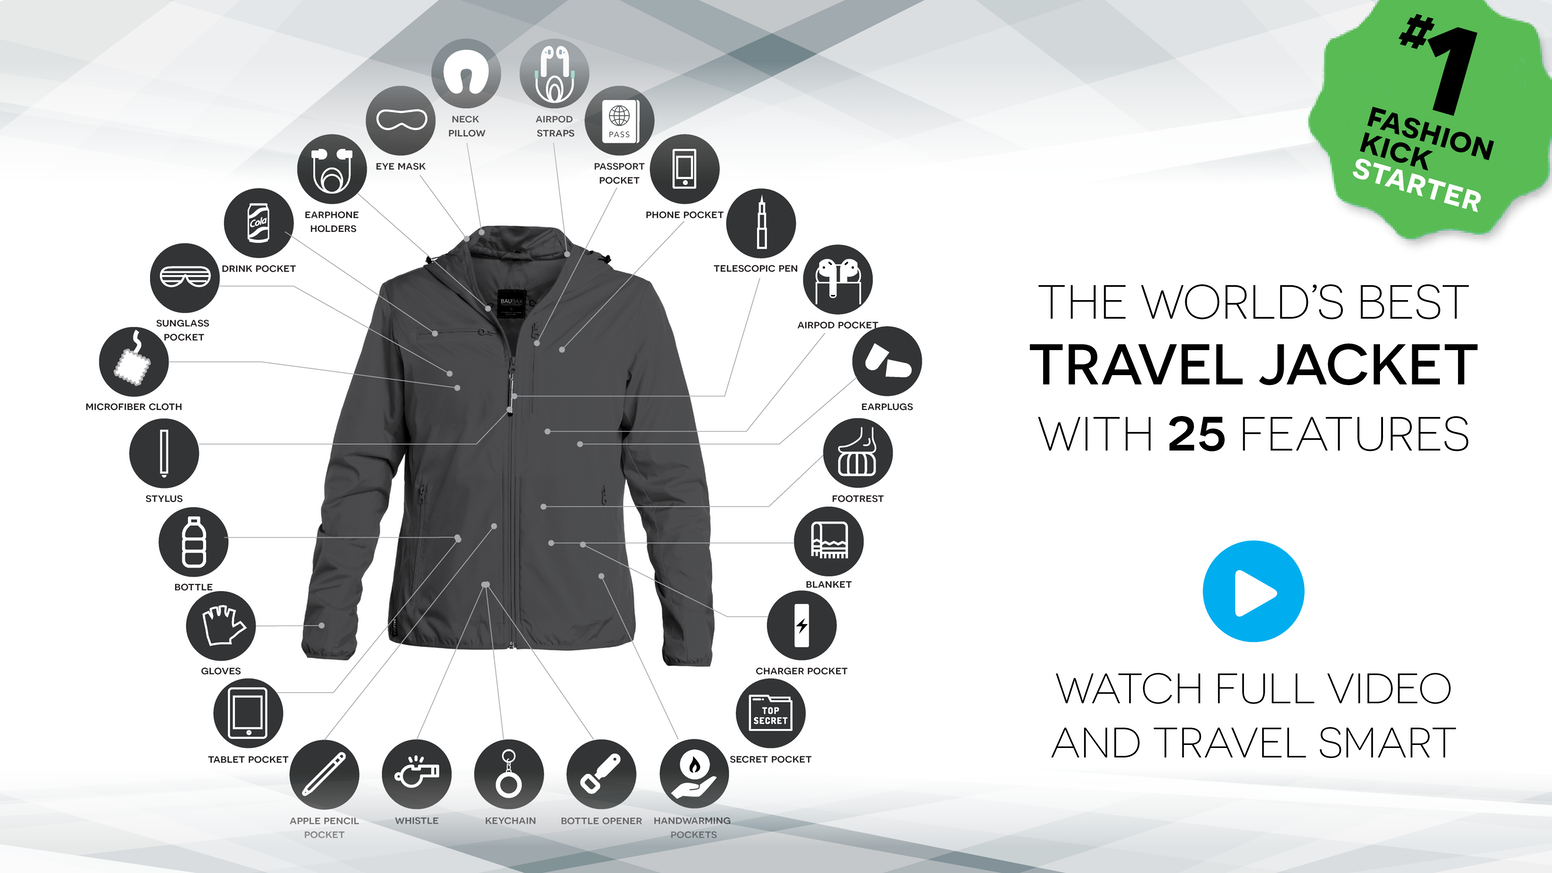 The worlds best travel jacket with 25 features baubax 20 by travel jackets with built in neck pillow eye mask gloves blanket gumiabroncs Choice Image